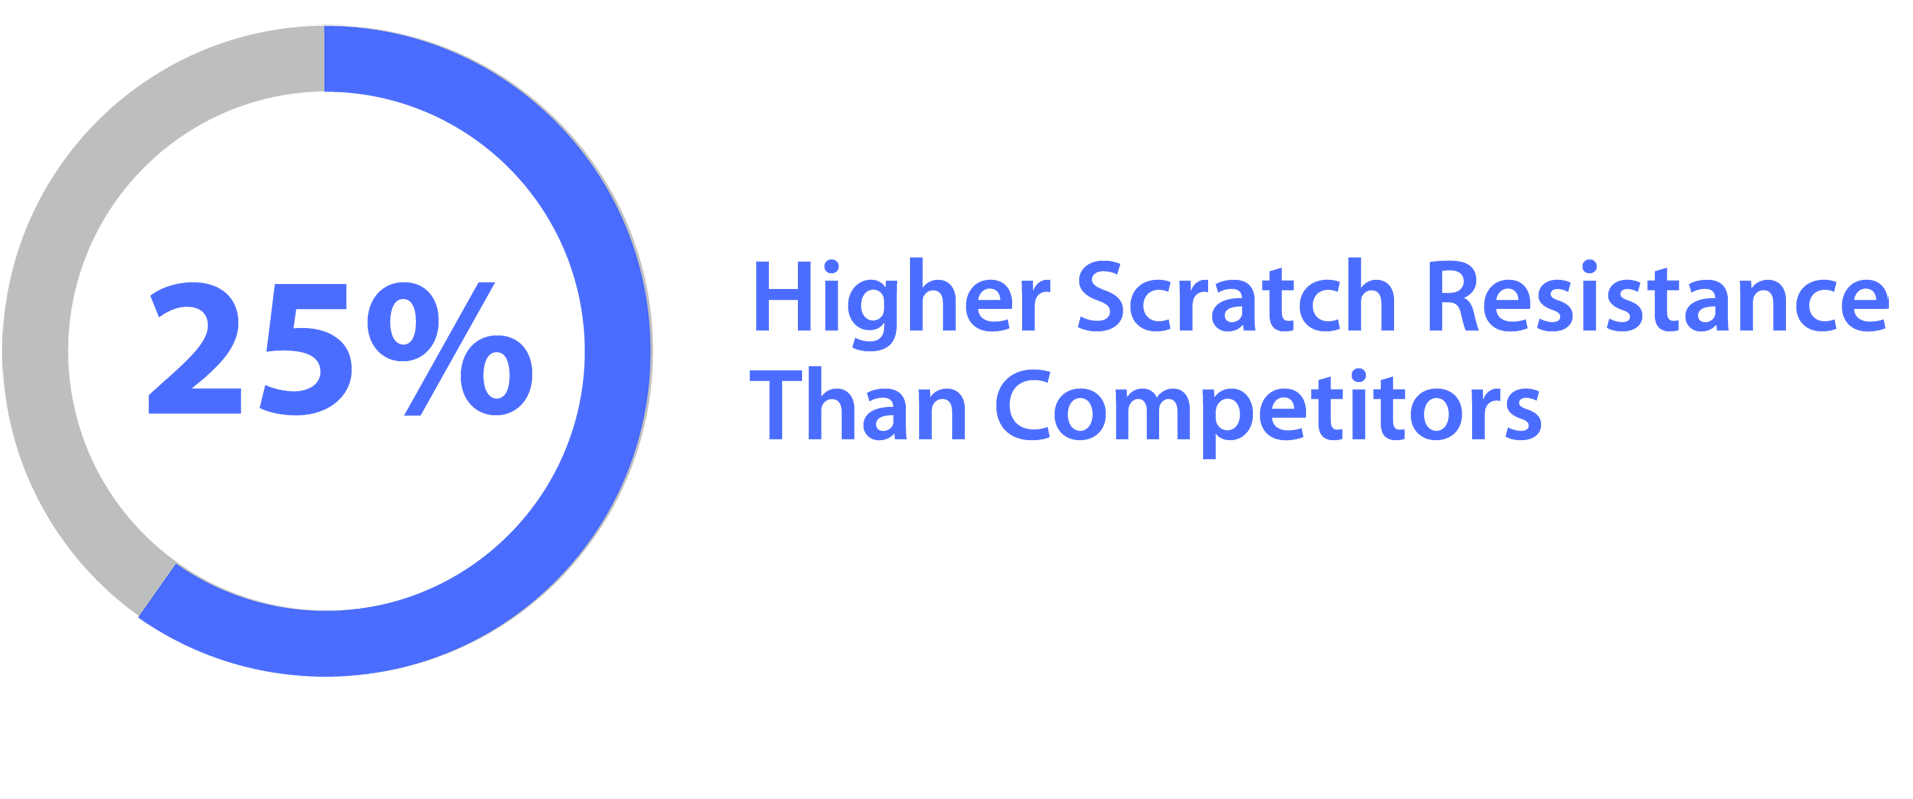 25% Higher Scratch Resistance Than Competitors